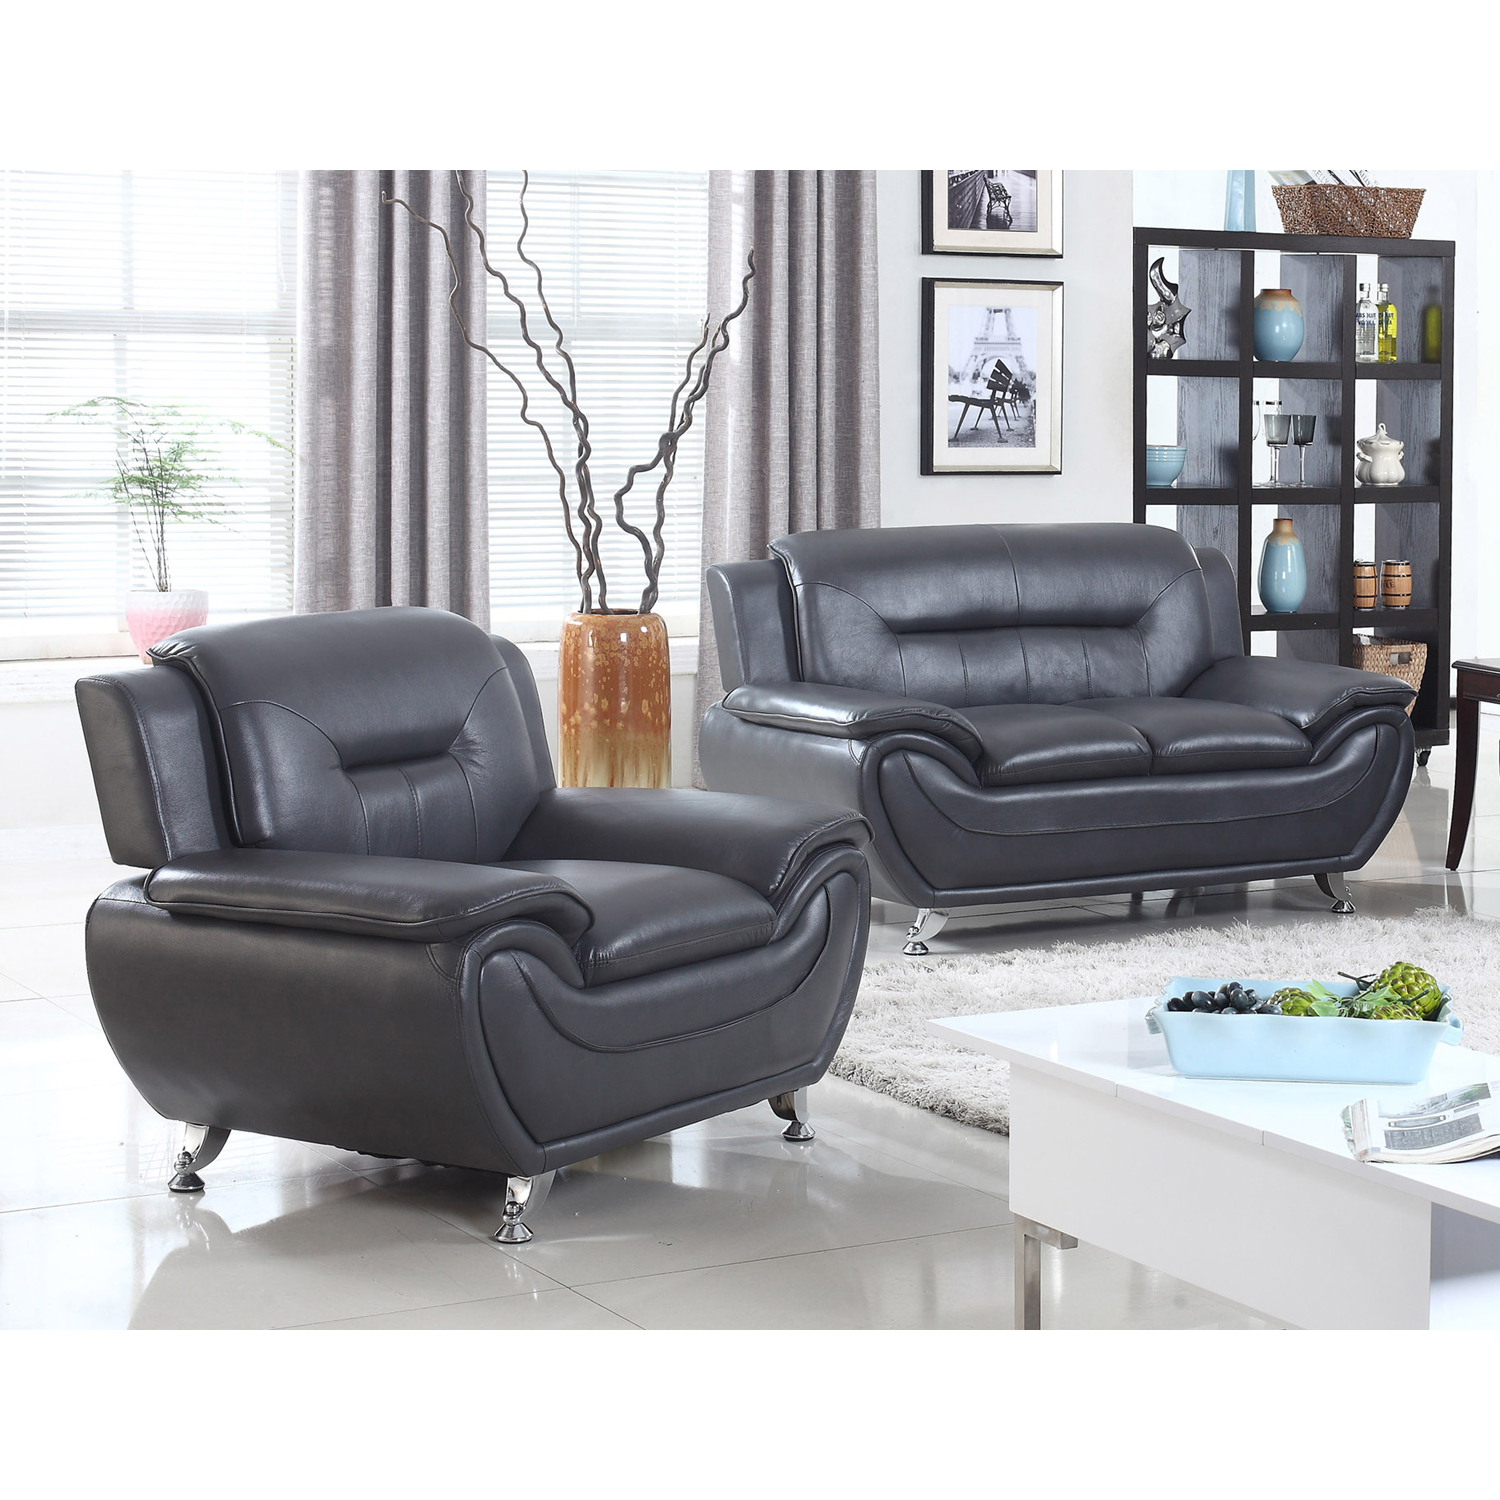 Norton Black Faux Leather Modern Living Room Loveseat and Chair Set